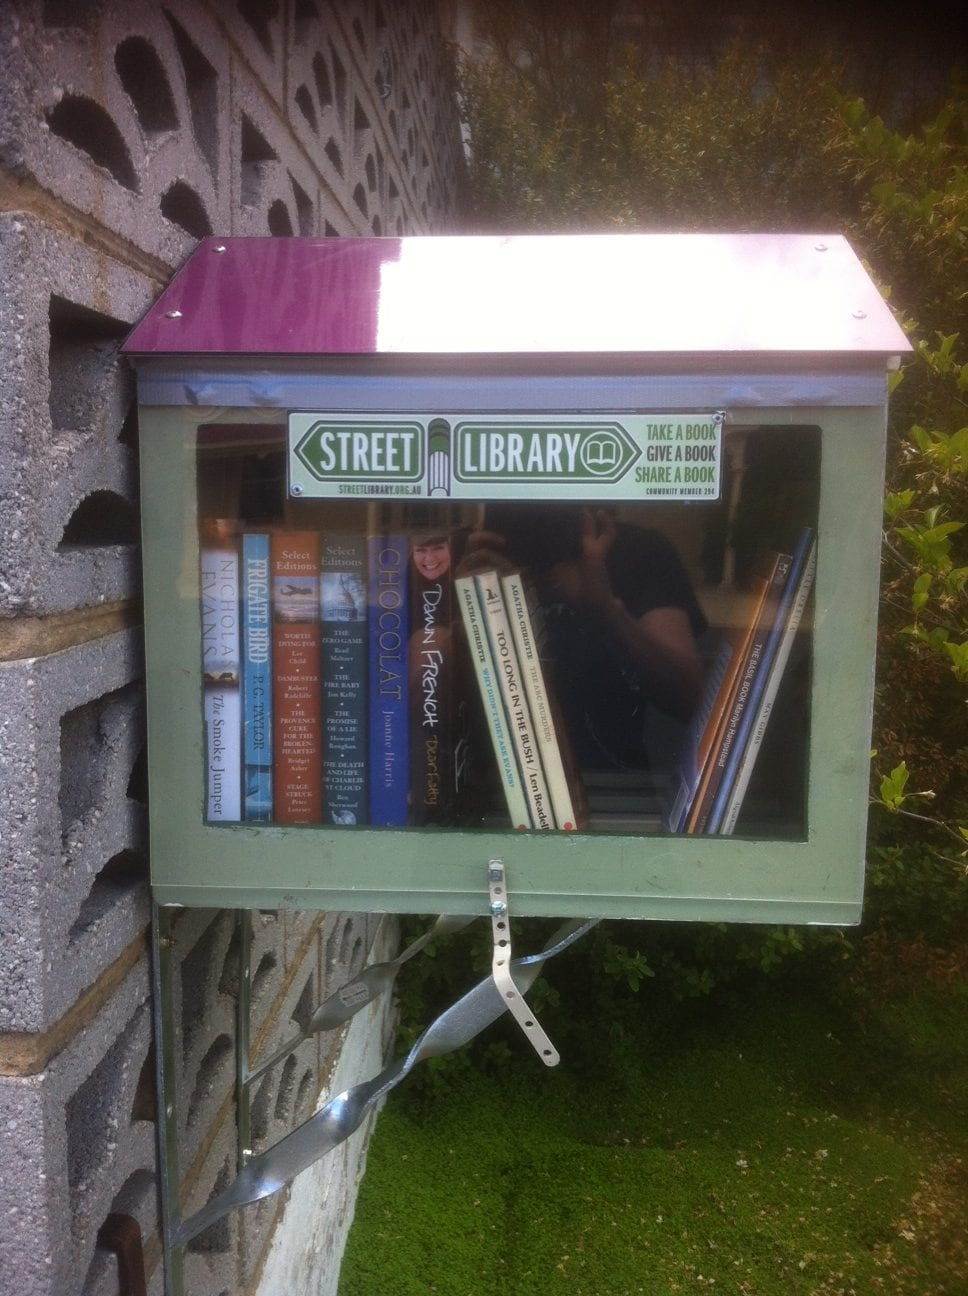 Street Library on Central